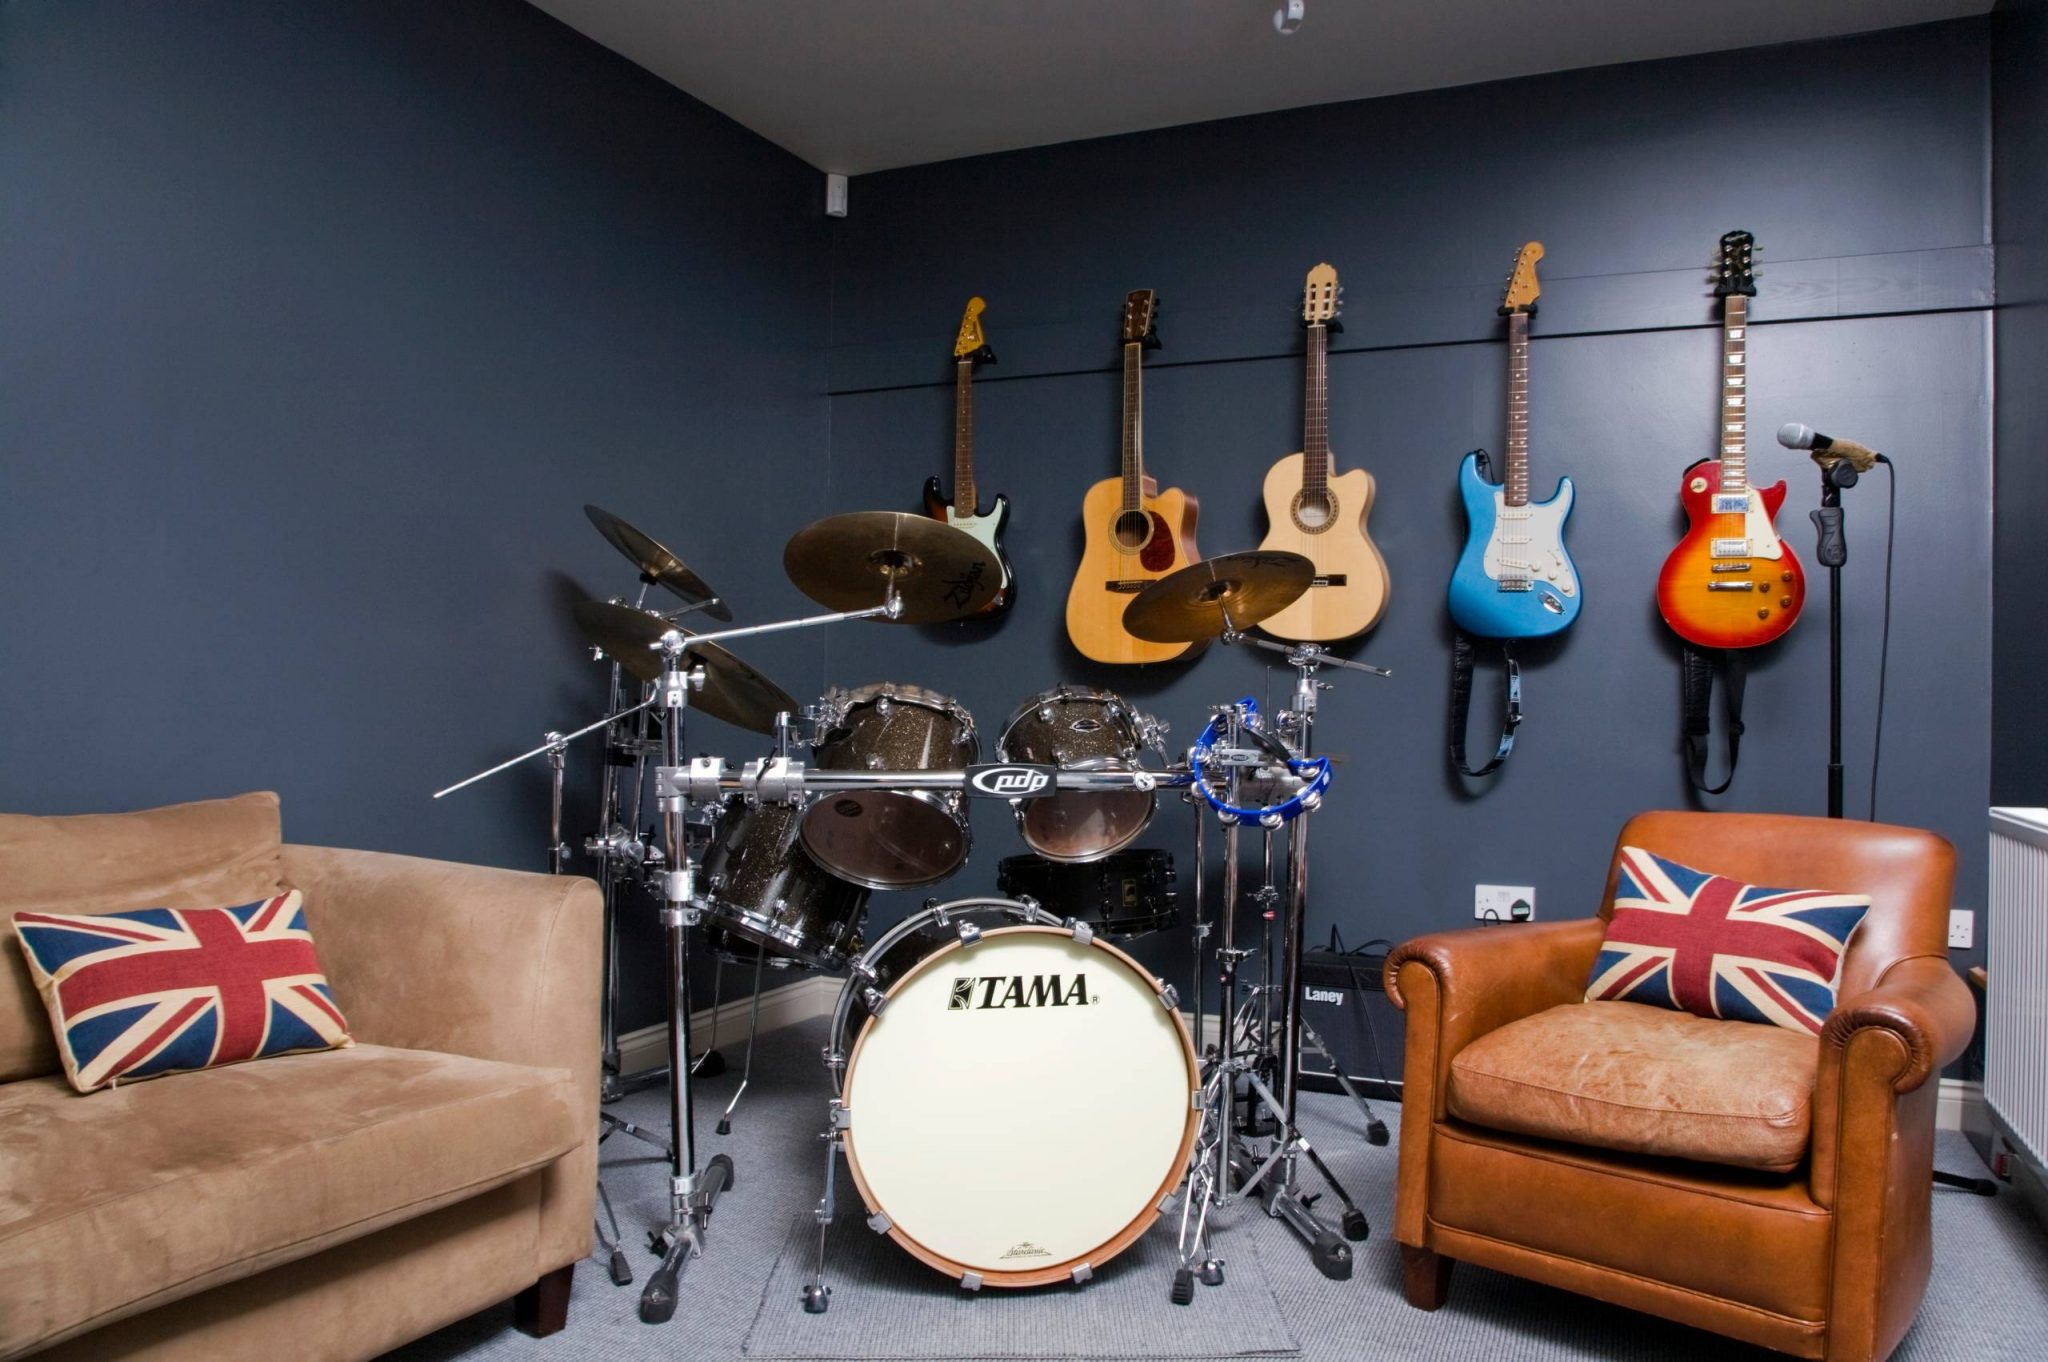 music-studio-room-house-guitars-drums-and-band